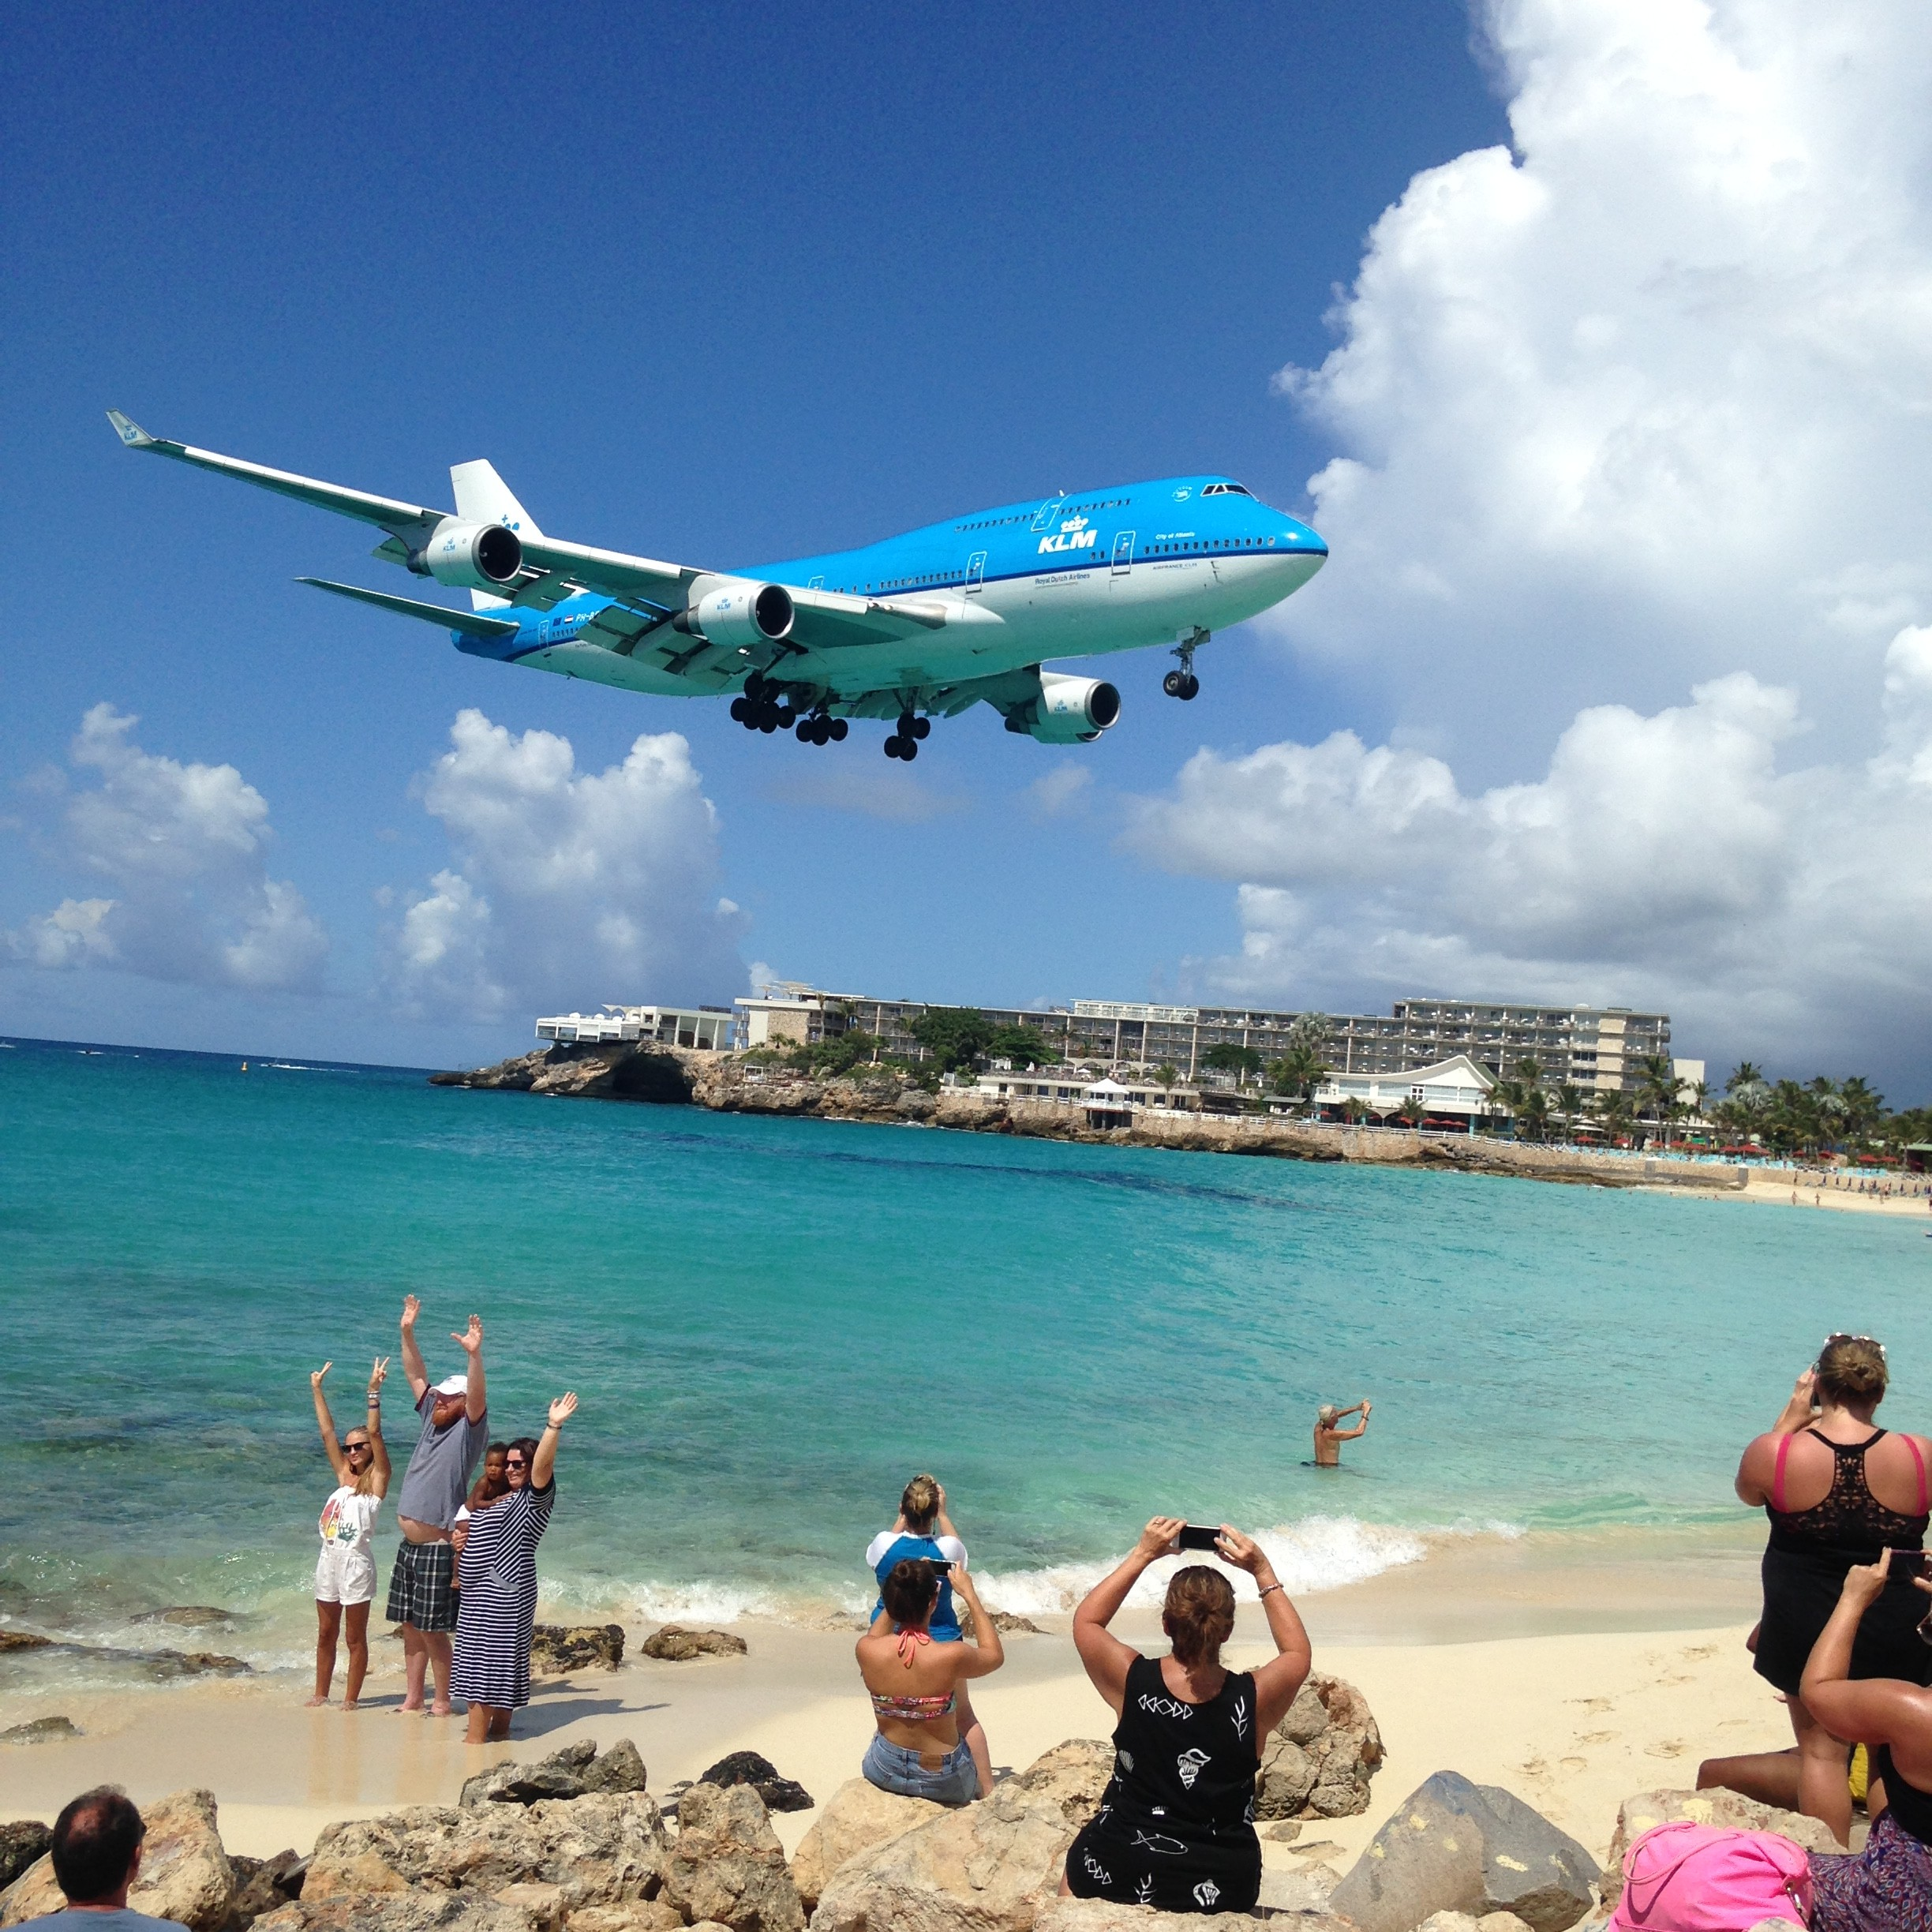 Arrival to SXM